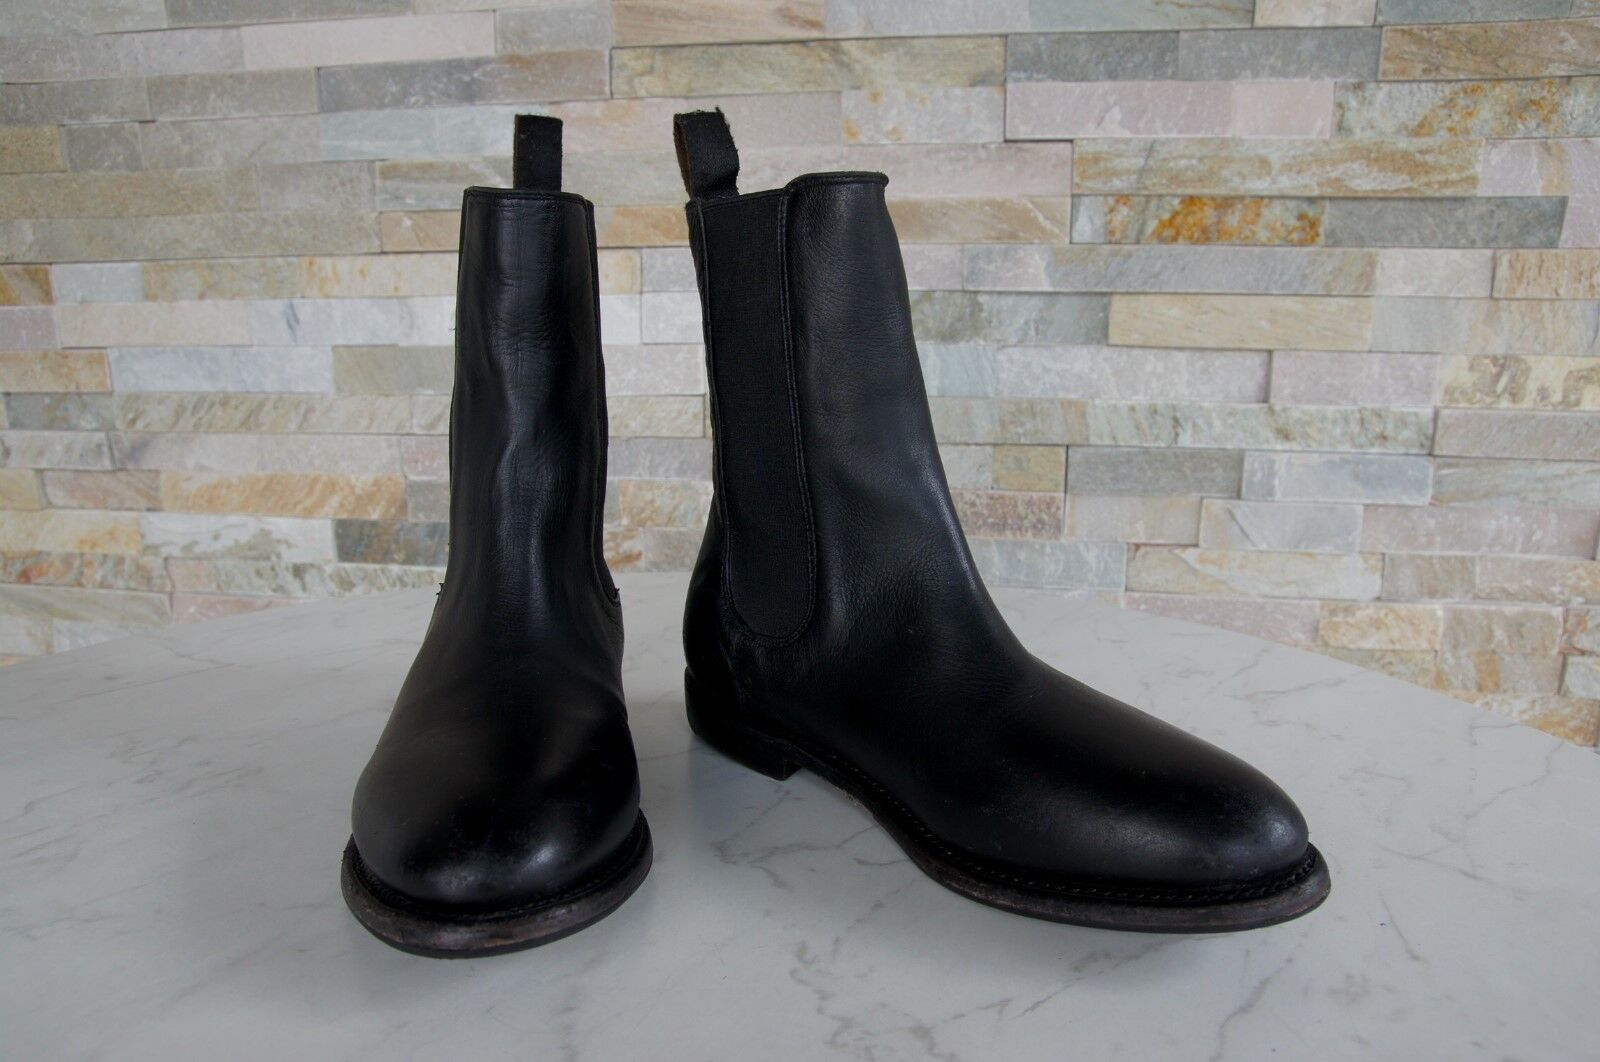 Ash N. N. N. 37 Boots Scarpe stivaletti vintage country Patty nero NUOVO UVP 97cff2